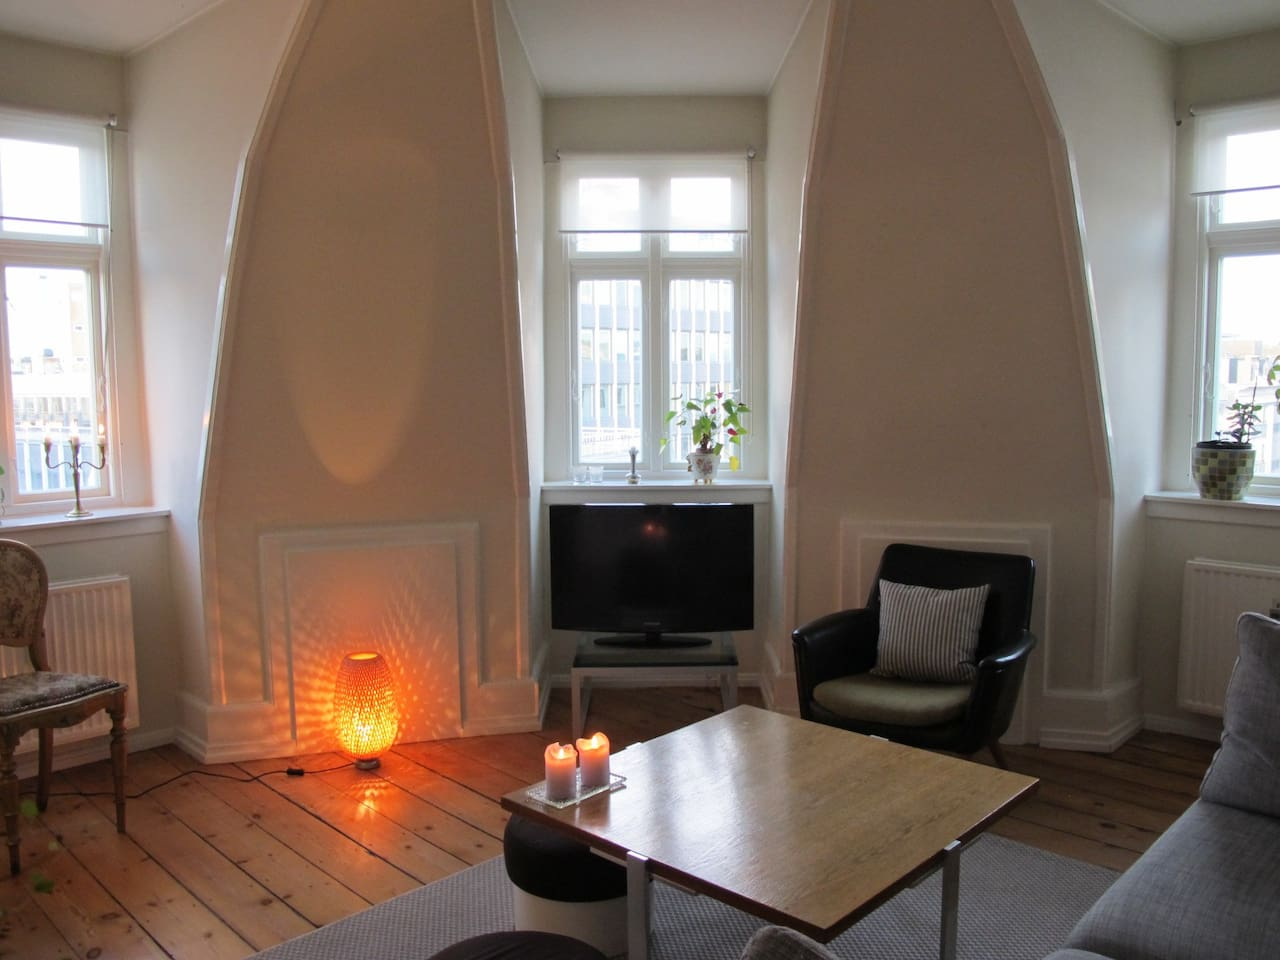 Living room with 3 bay windows